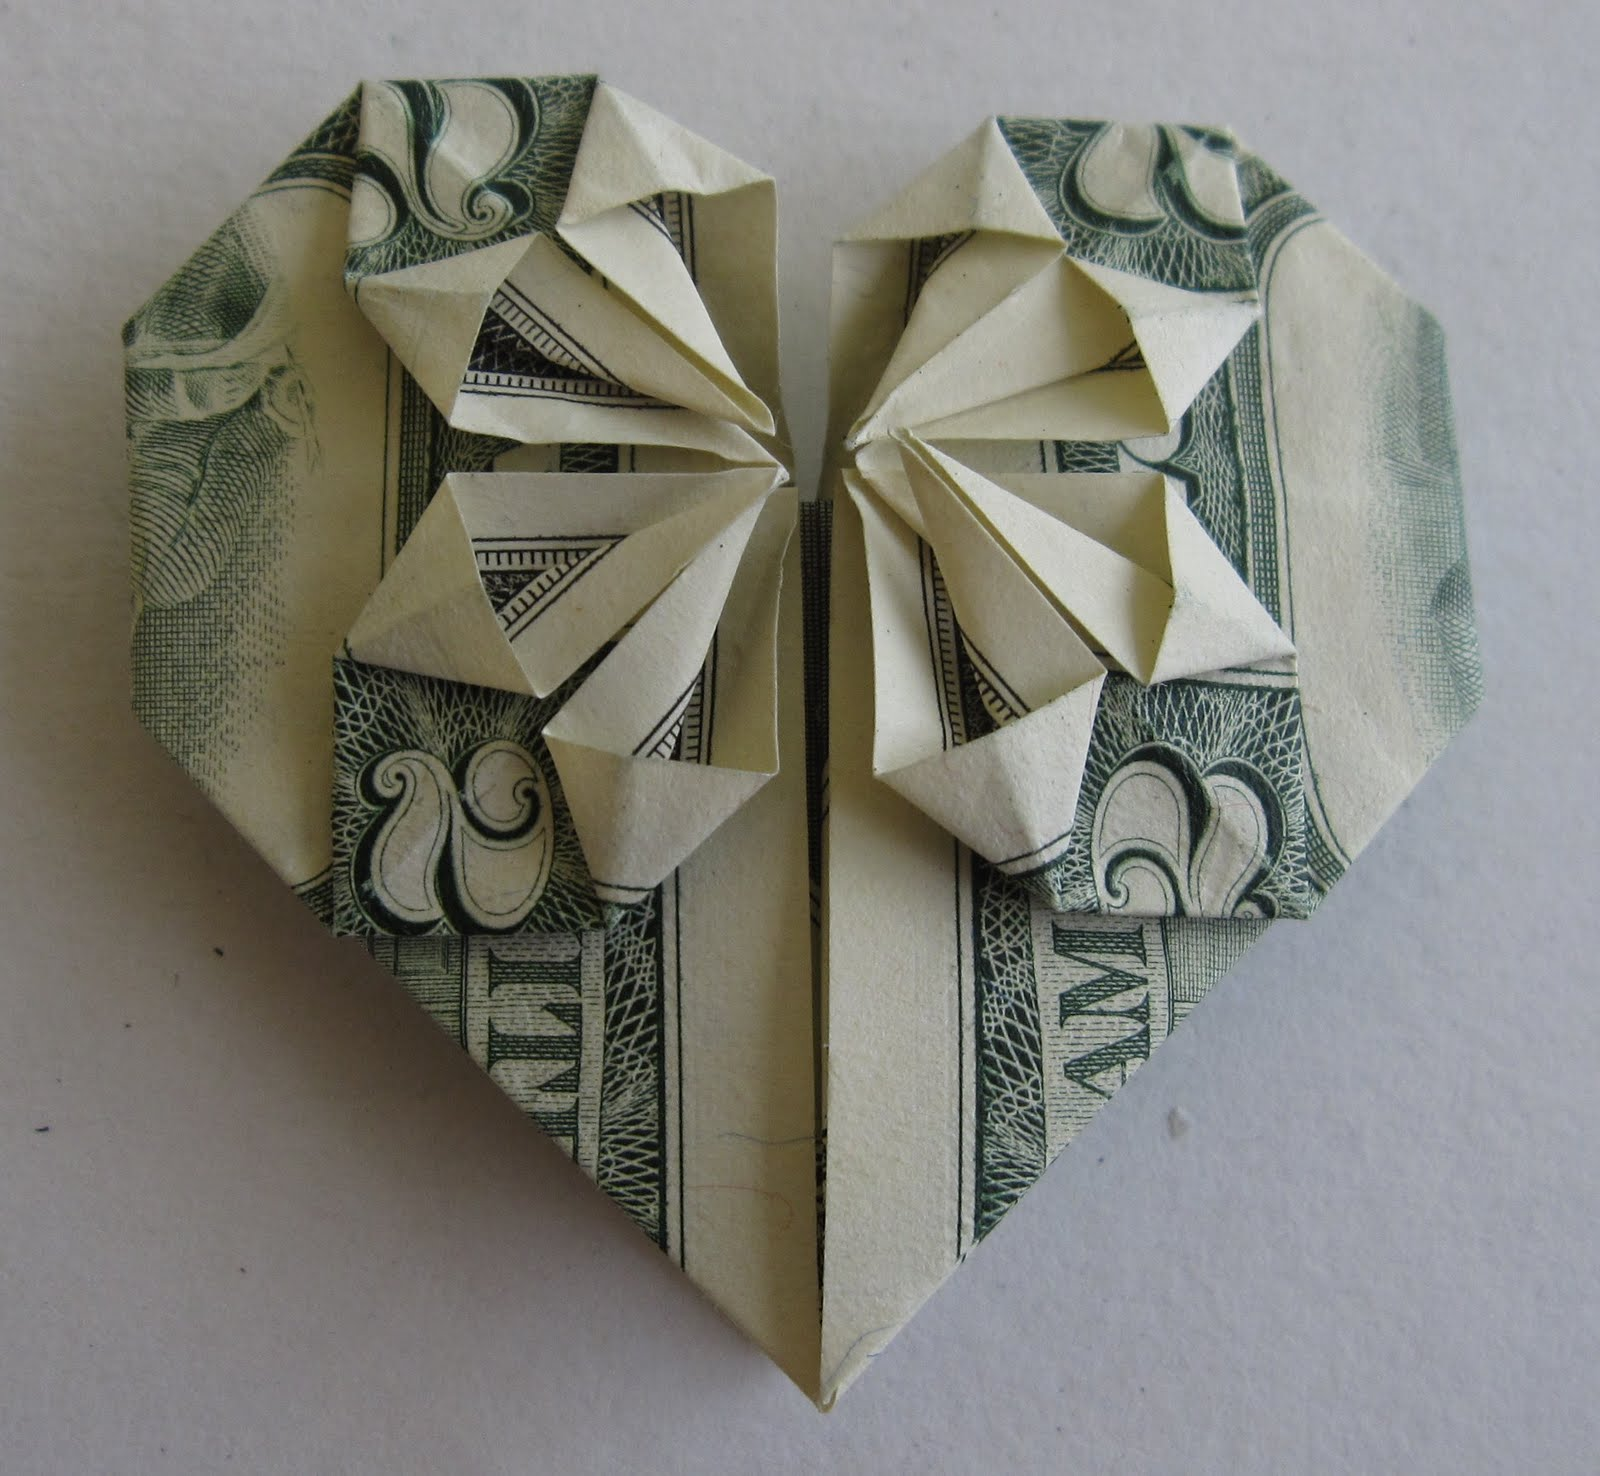 Homemade Origami Just Made For You!! - photo#7